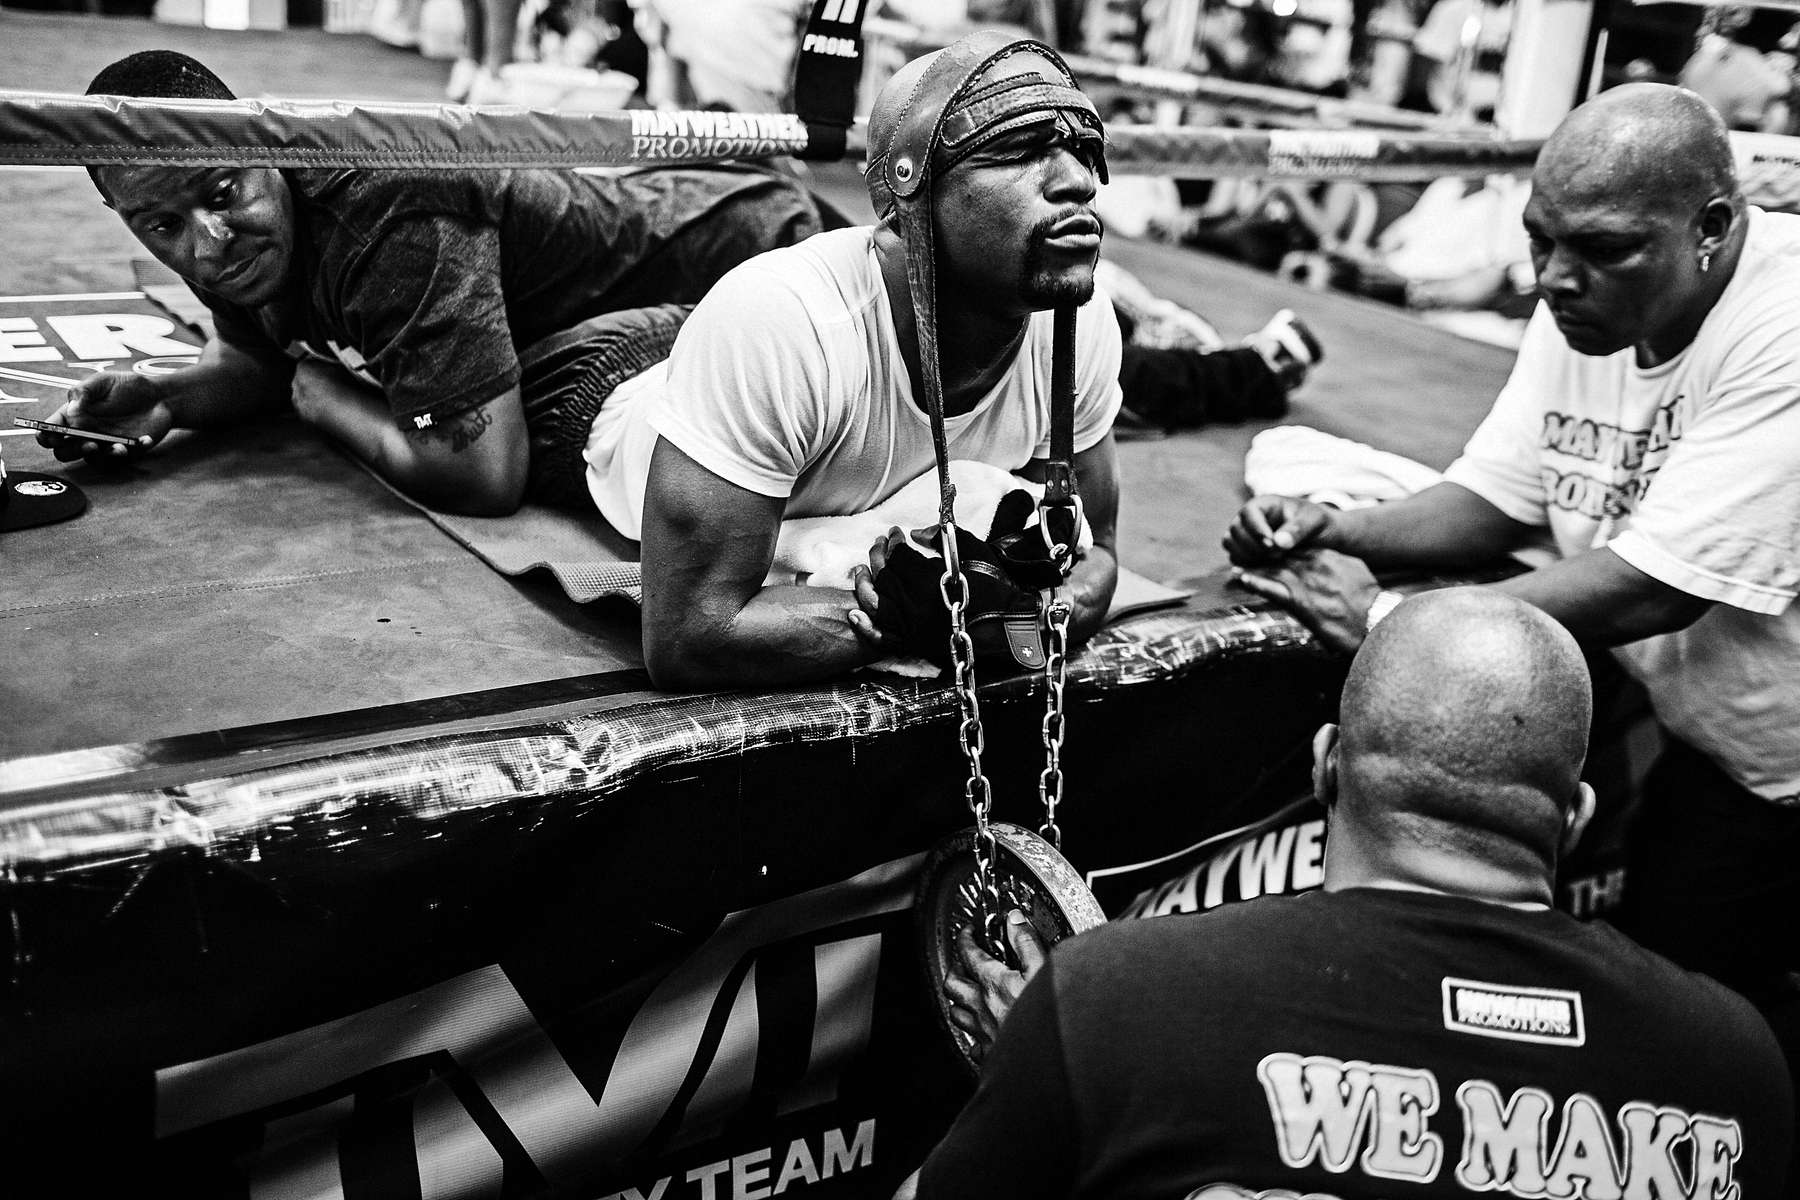 LAS VEGAS, NV - JULY 26: Mayweather goes through a medieval neck workout as Mayweather Promotions CEO Leonard Ellerbe guides the weight, his uncle John Sinclair (right) watches and an assistant holds his legs. (Photo by Benjamin Lowy/Reportage by Getty Images)